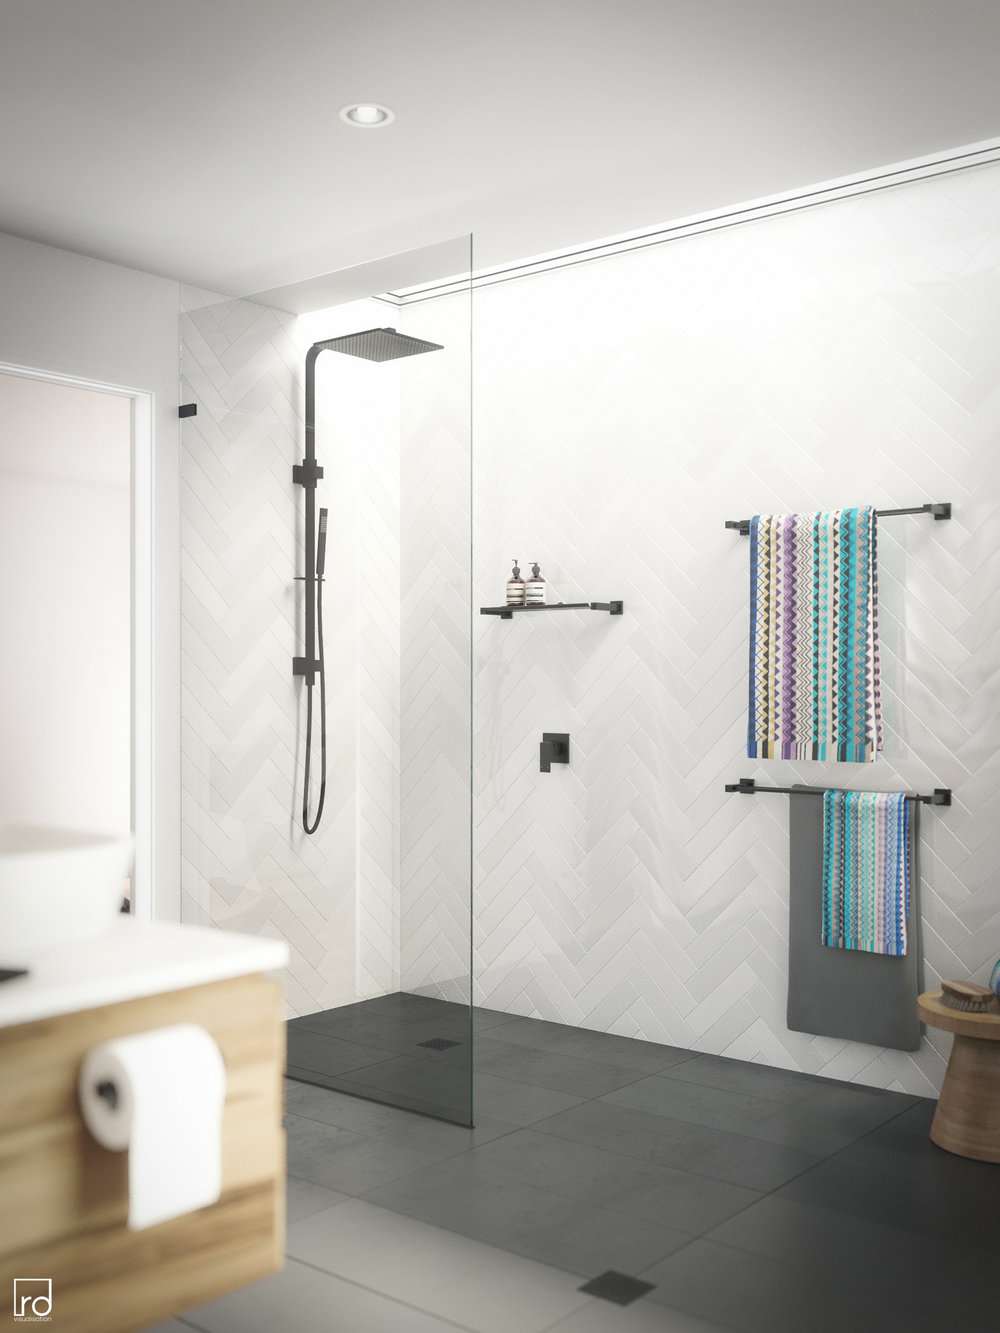 Meir Bathroom - Sydney, NSW — rdvis Creative Studio | 3D Rendering ...